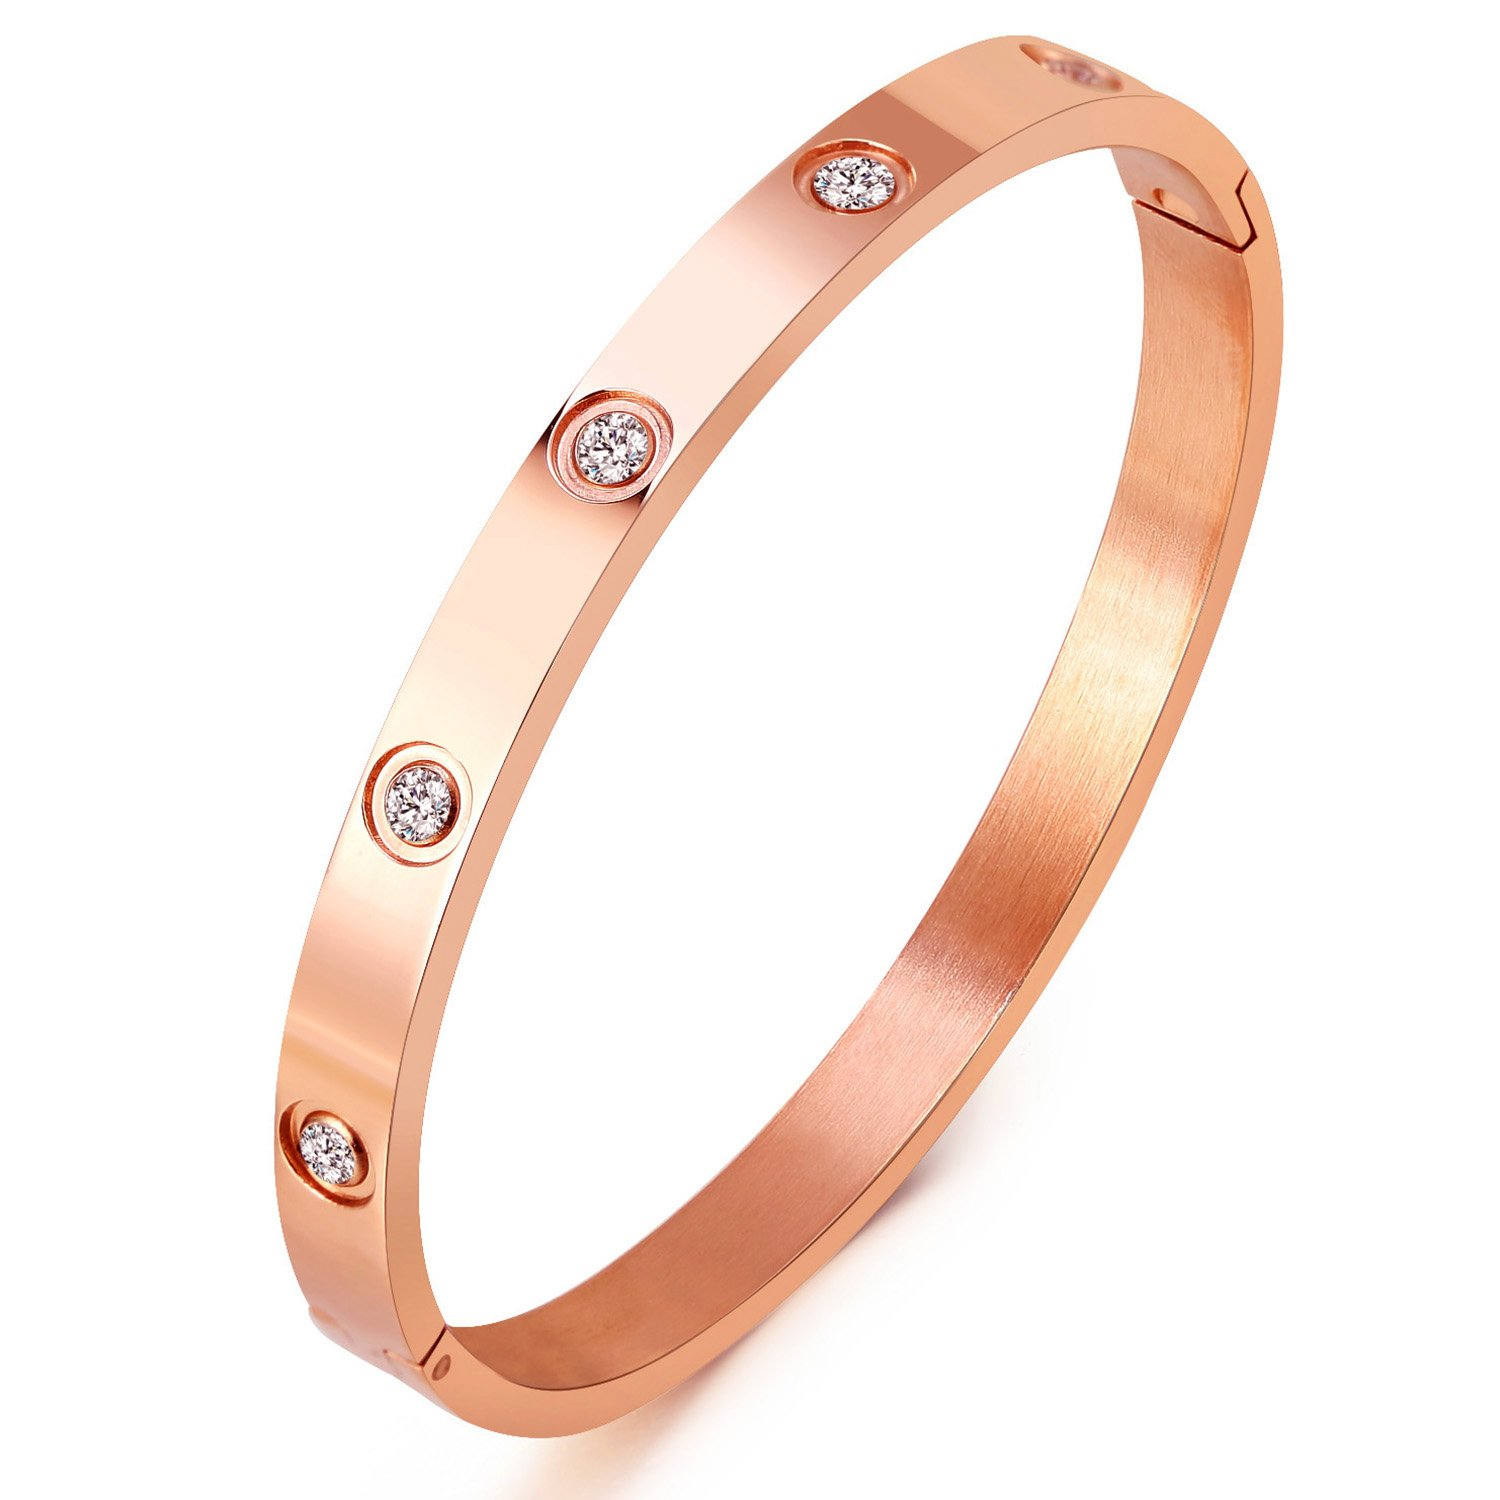 MVCOLEDY Mocalady Jewelry Rose Gold Plated Bangle Bracelet Set in Stone Stainless Steel All CZ Crystal Bangle Bracelets for Women Jewelry Size 6.7''